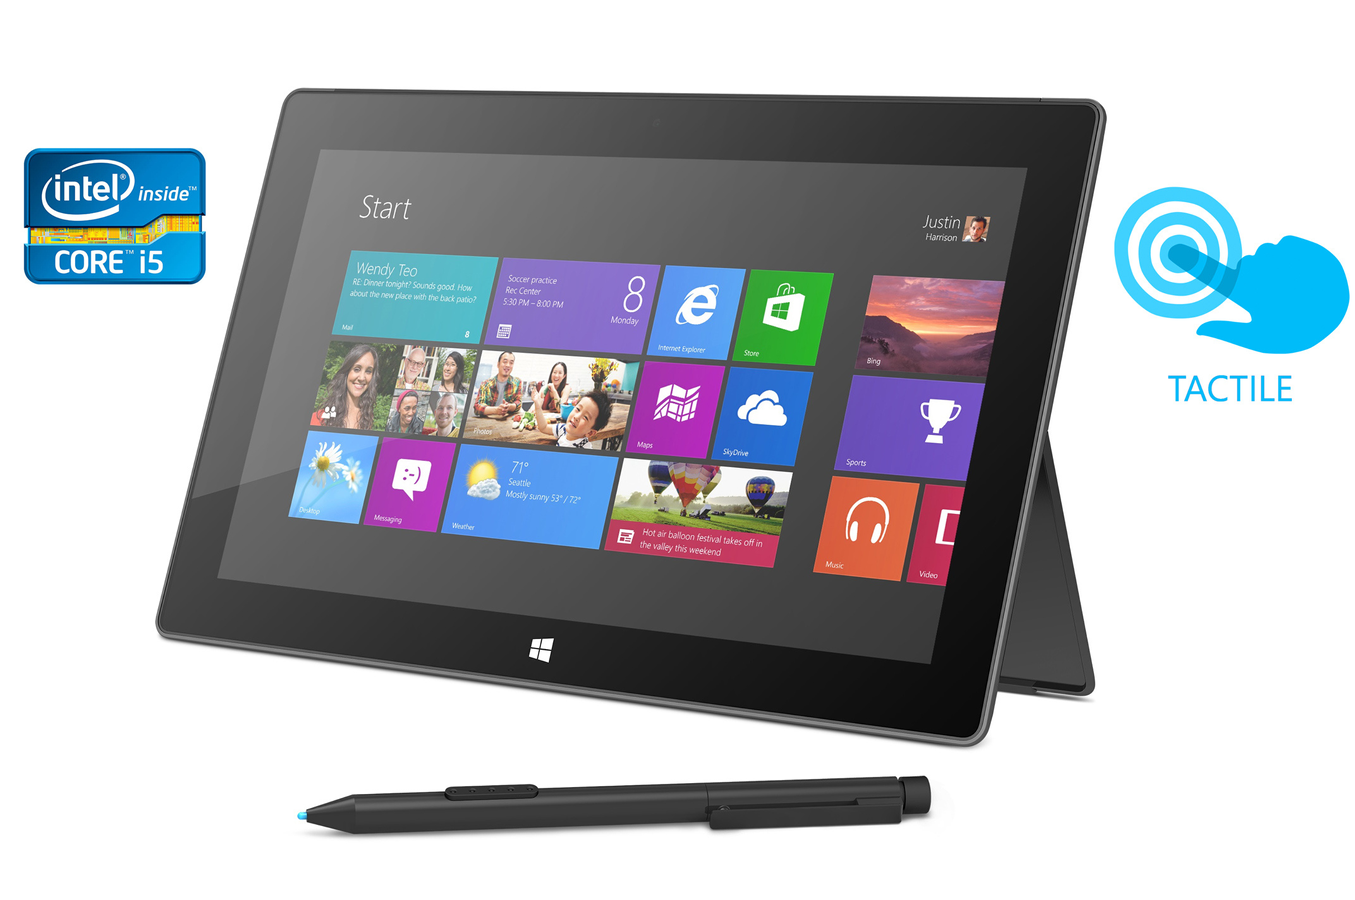 microsoft surface pro 64 go tablette tactile ipad ordinateurpascher. Black Bedroom Furniture Sets. Home Design Ideas